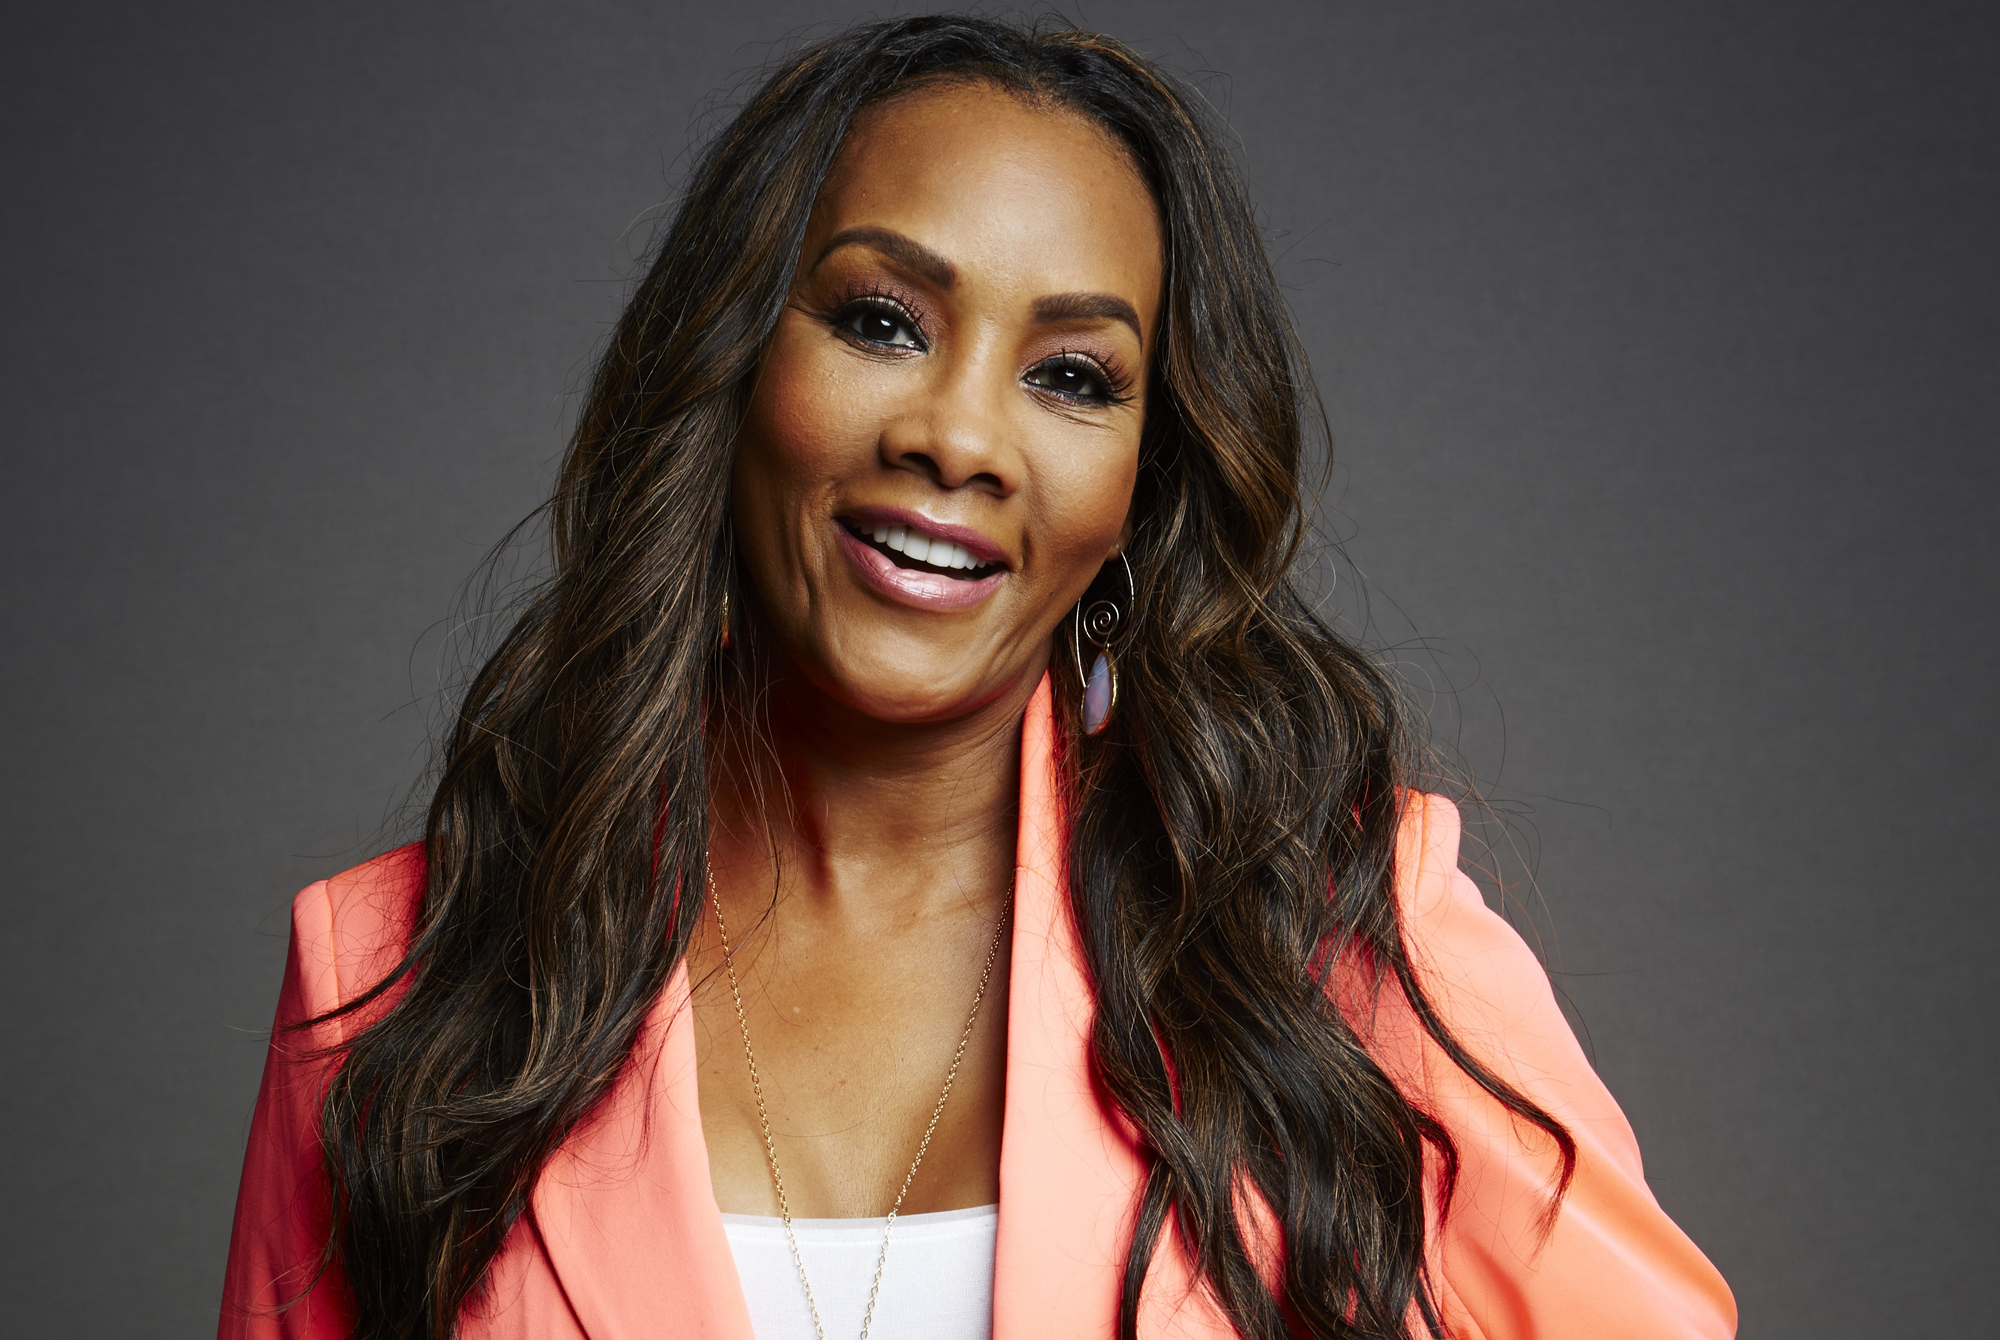 Exclusive: Vivica A. Fox And Tyson Beckford Talk Chocolate City ...